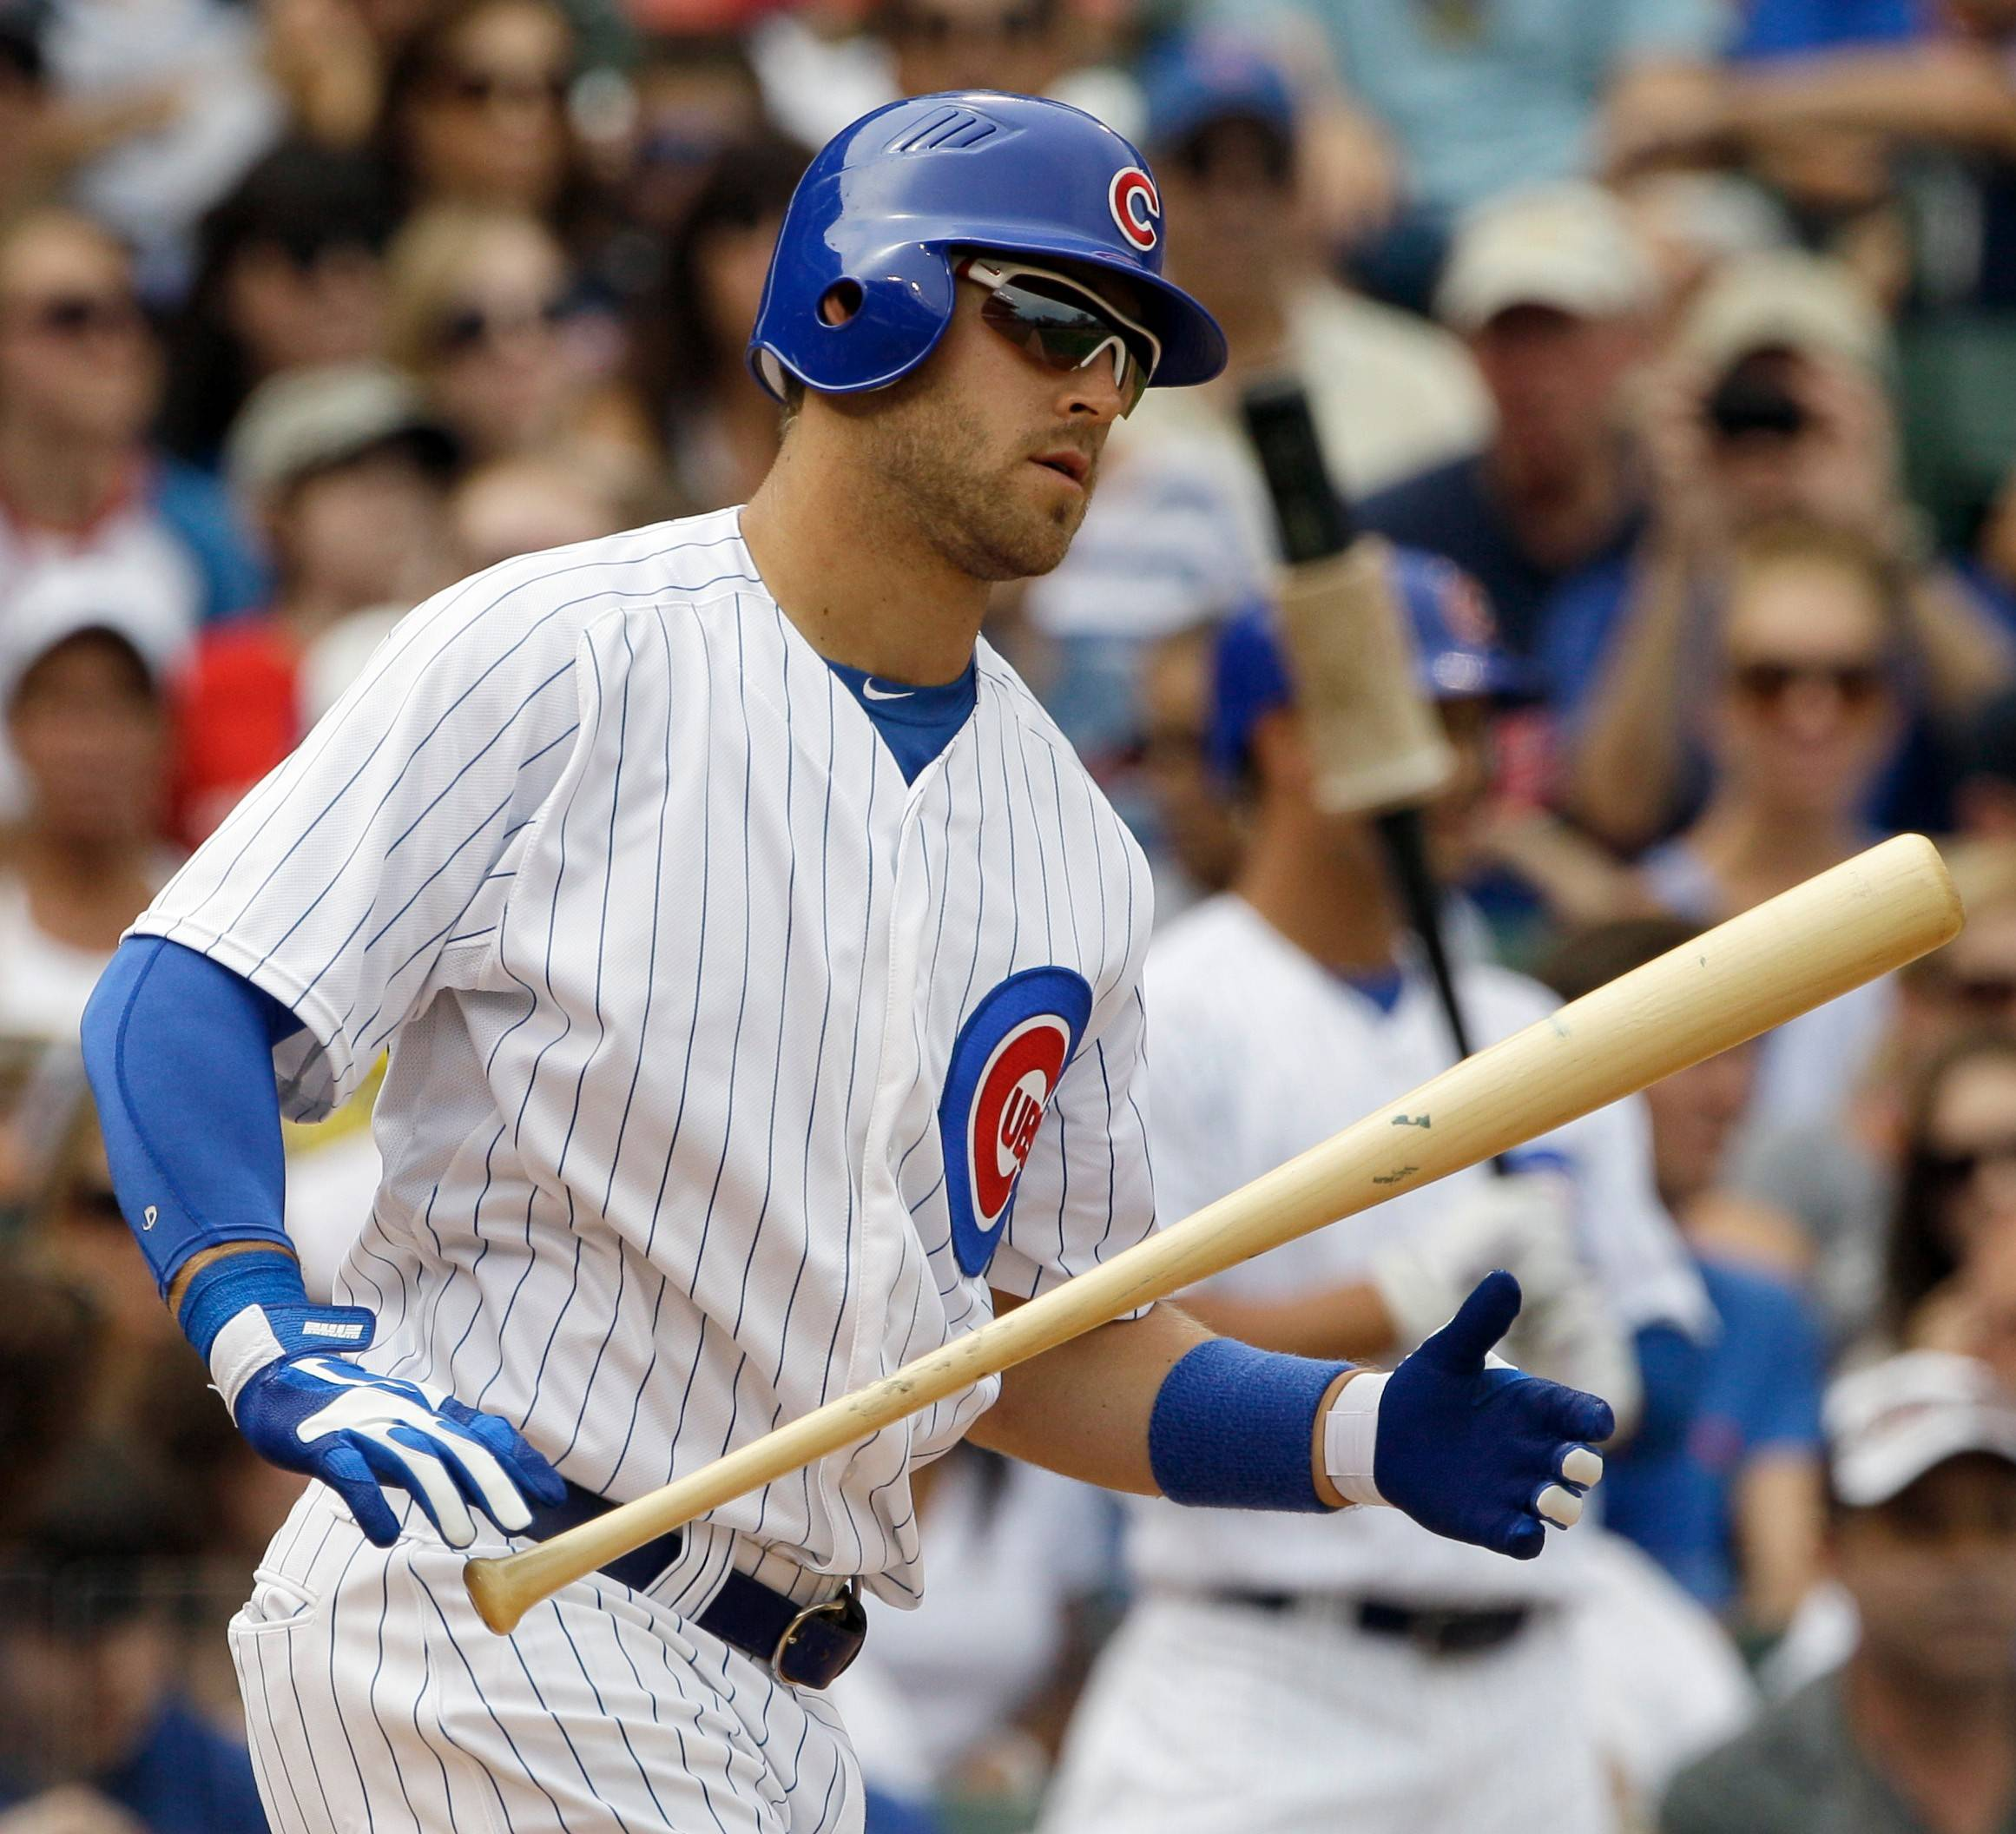 The Cubs have parted ways with former first-round draft pick Brett Jackson. They have traded the minor league outfielder to the Arizona Diamondbacks for pitcher Blake Cooper. Jackson was the Cubs' first-round selection in the 2009 amateur draft.